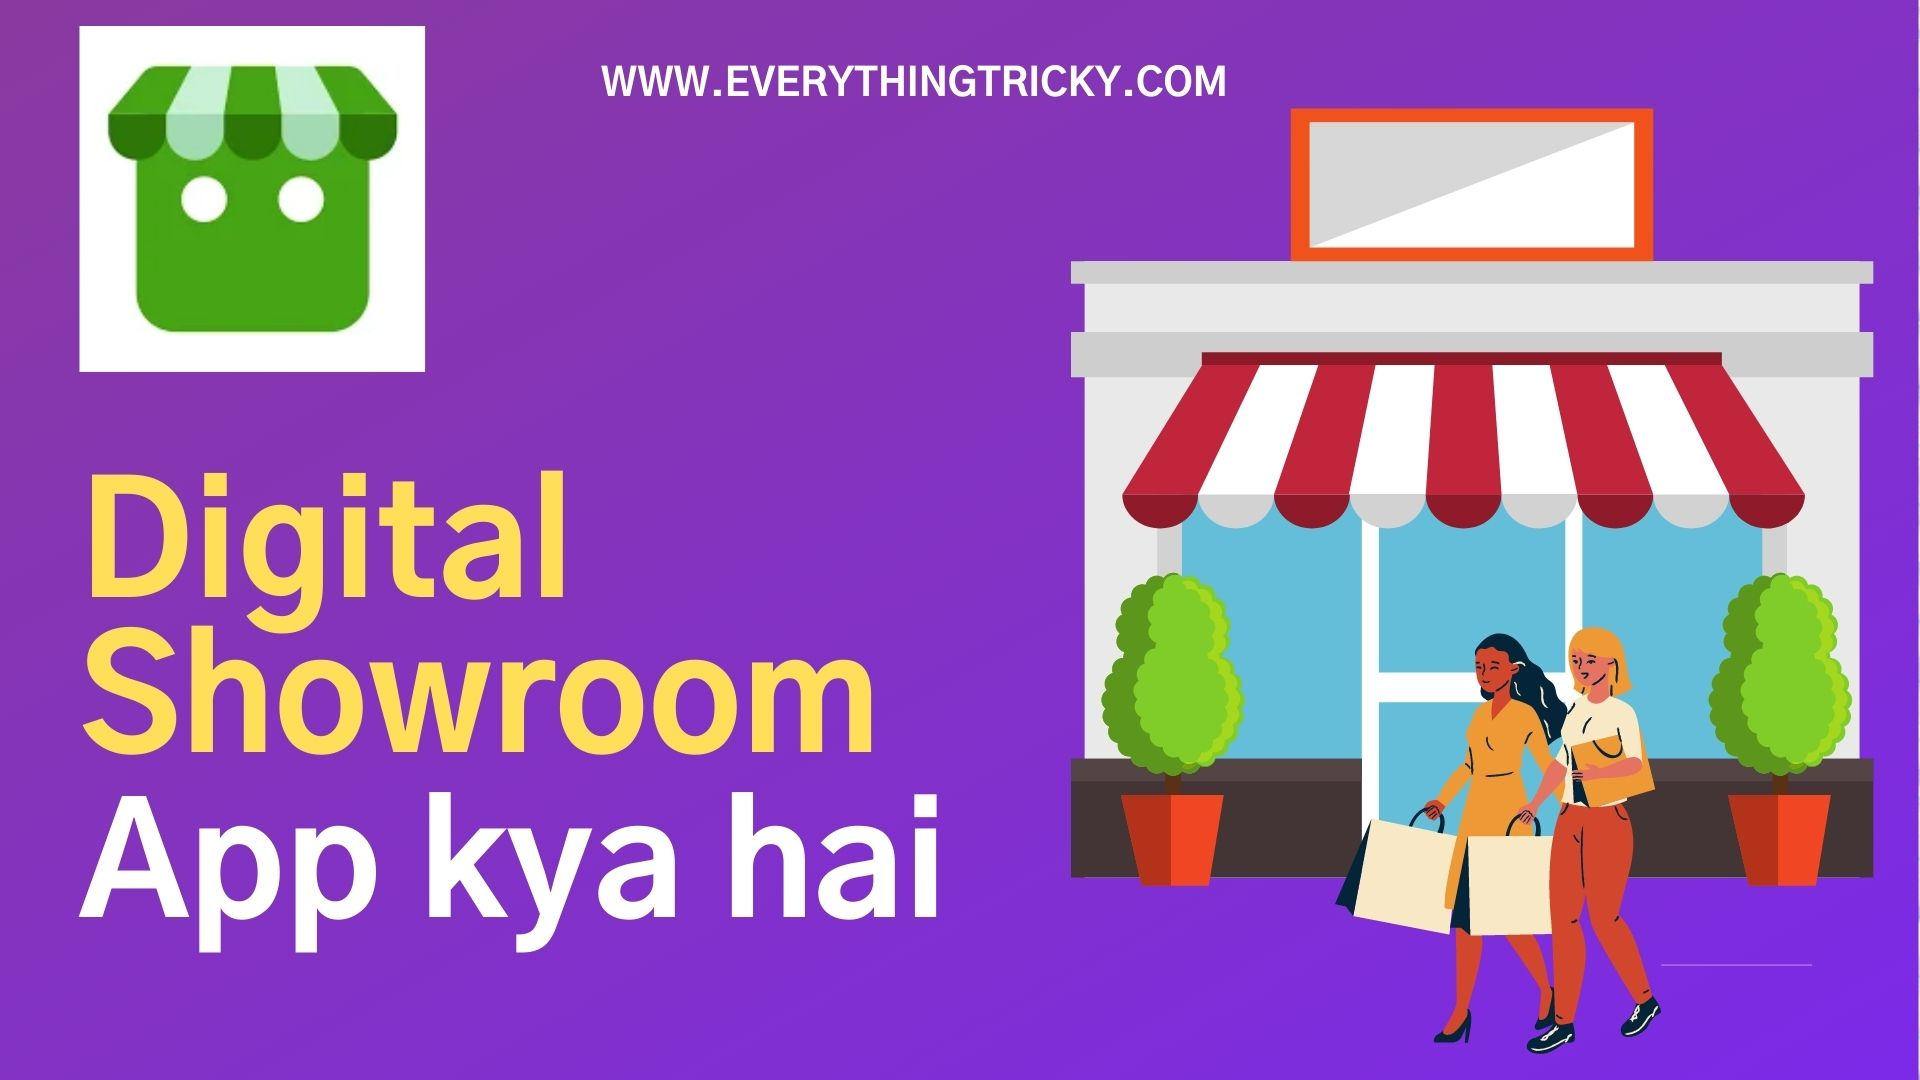 digital showroom app kya hai